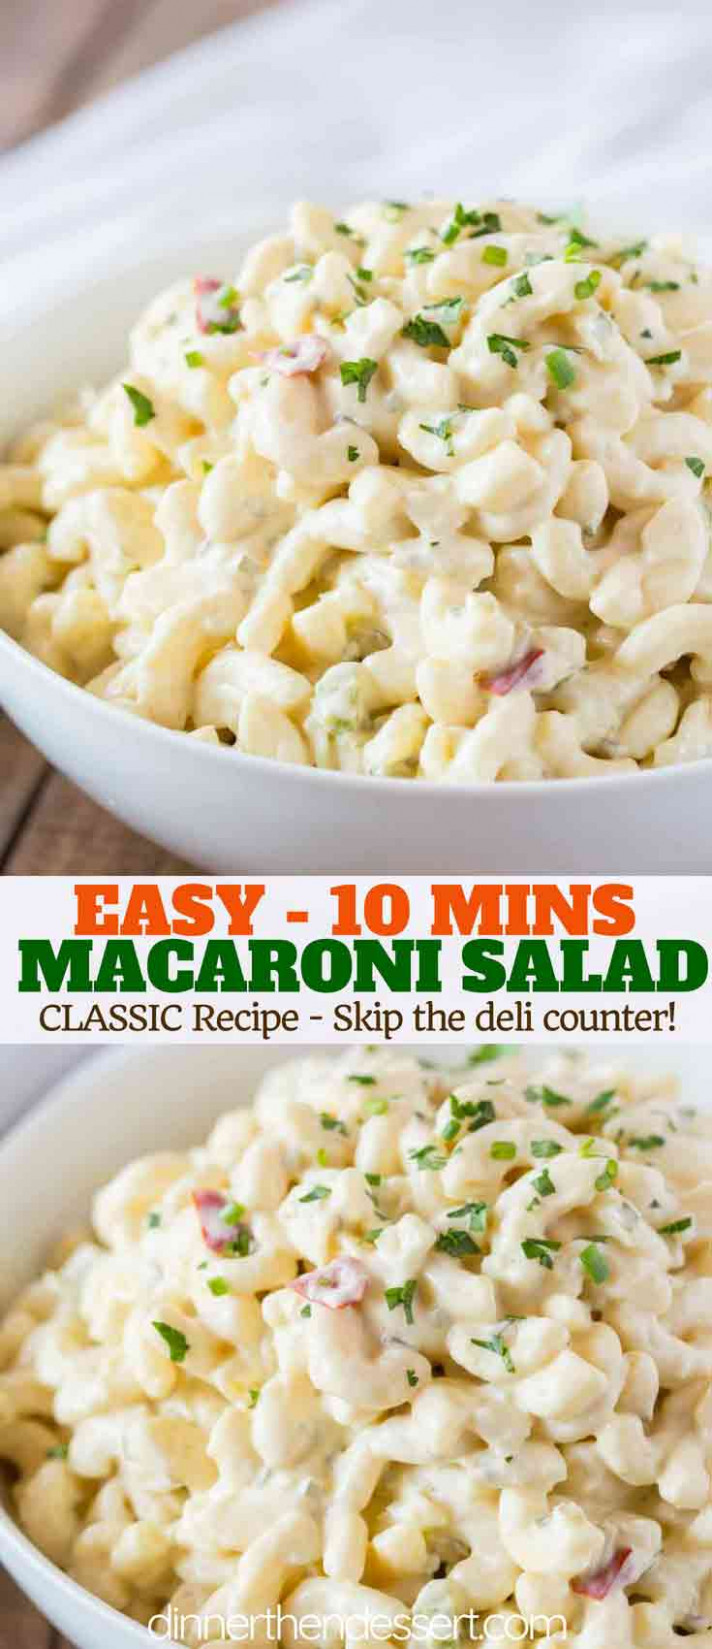 Easy Macaroni Salad - Dinner, then Dessert - dinner recipes you can make the night before